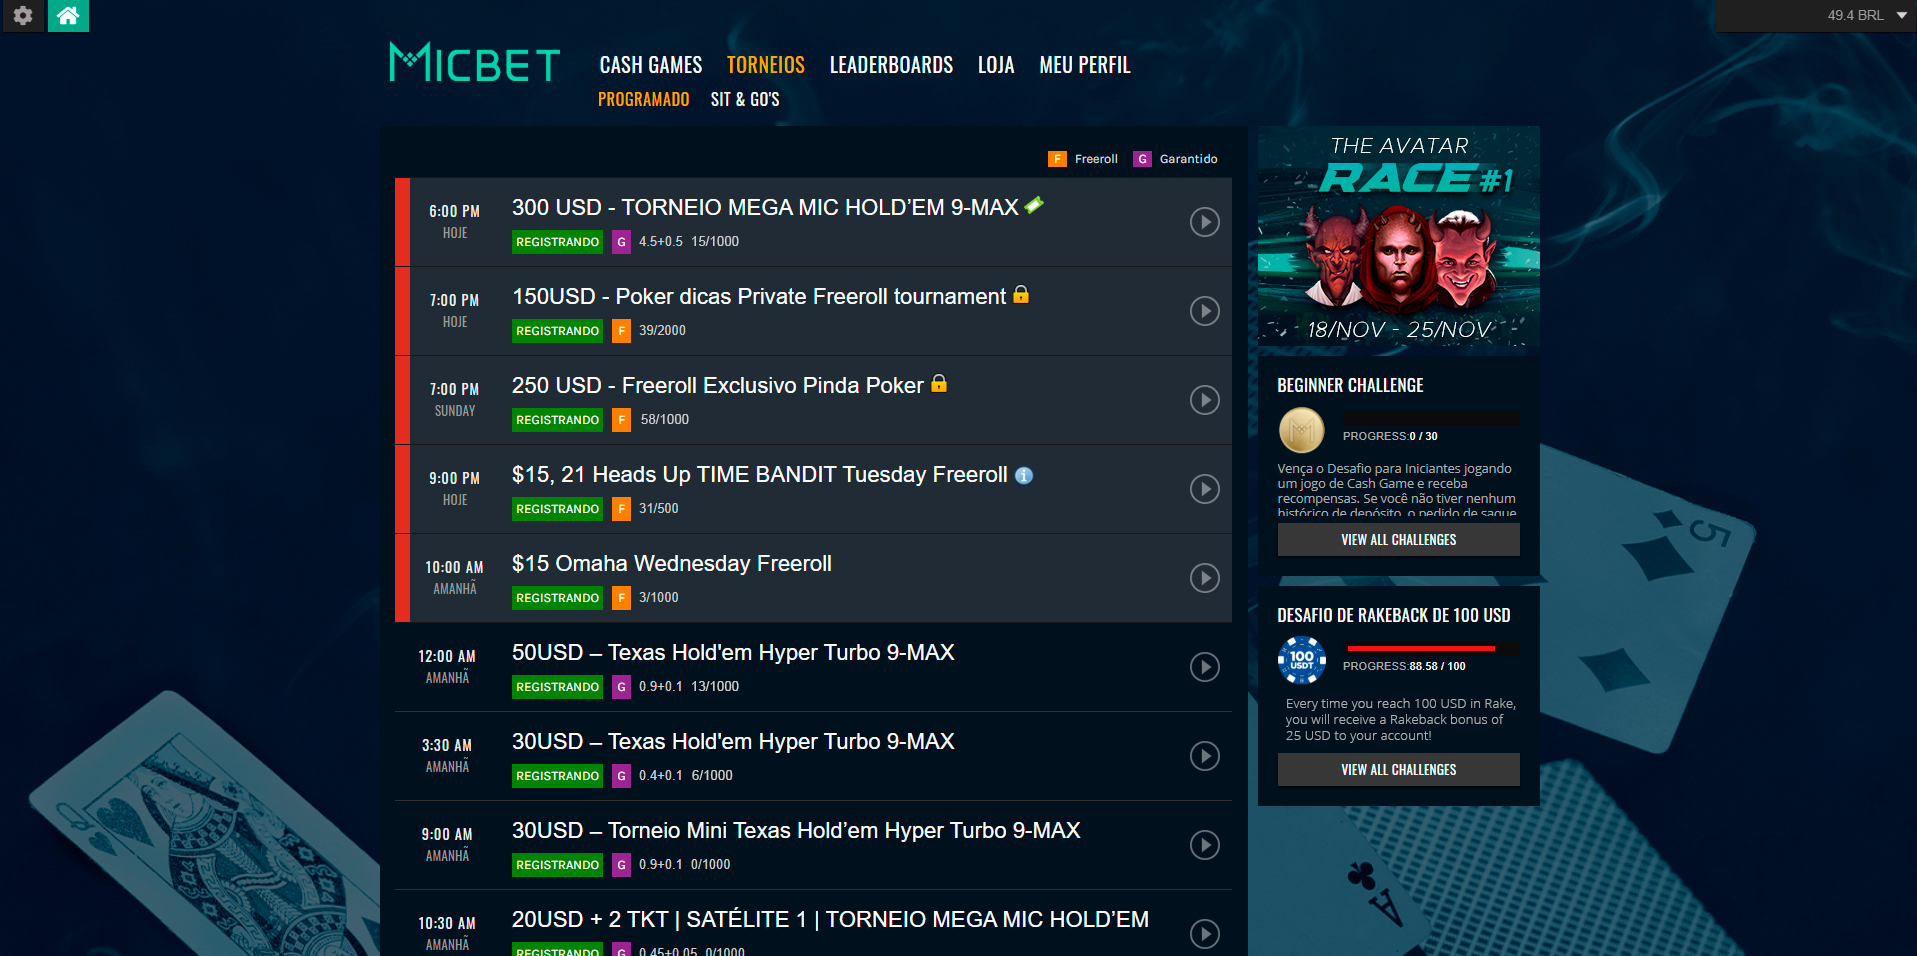 MICBET Cryptopoker Room Looking To Tick All The Boxes